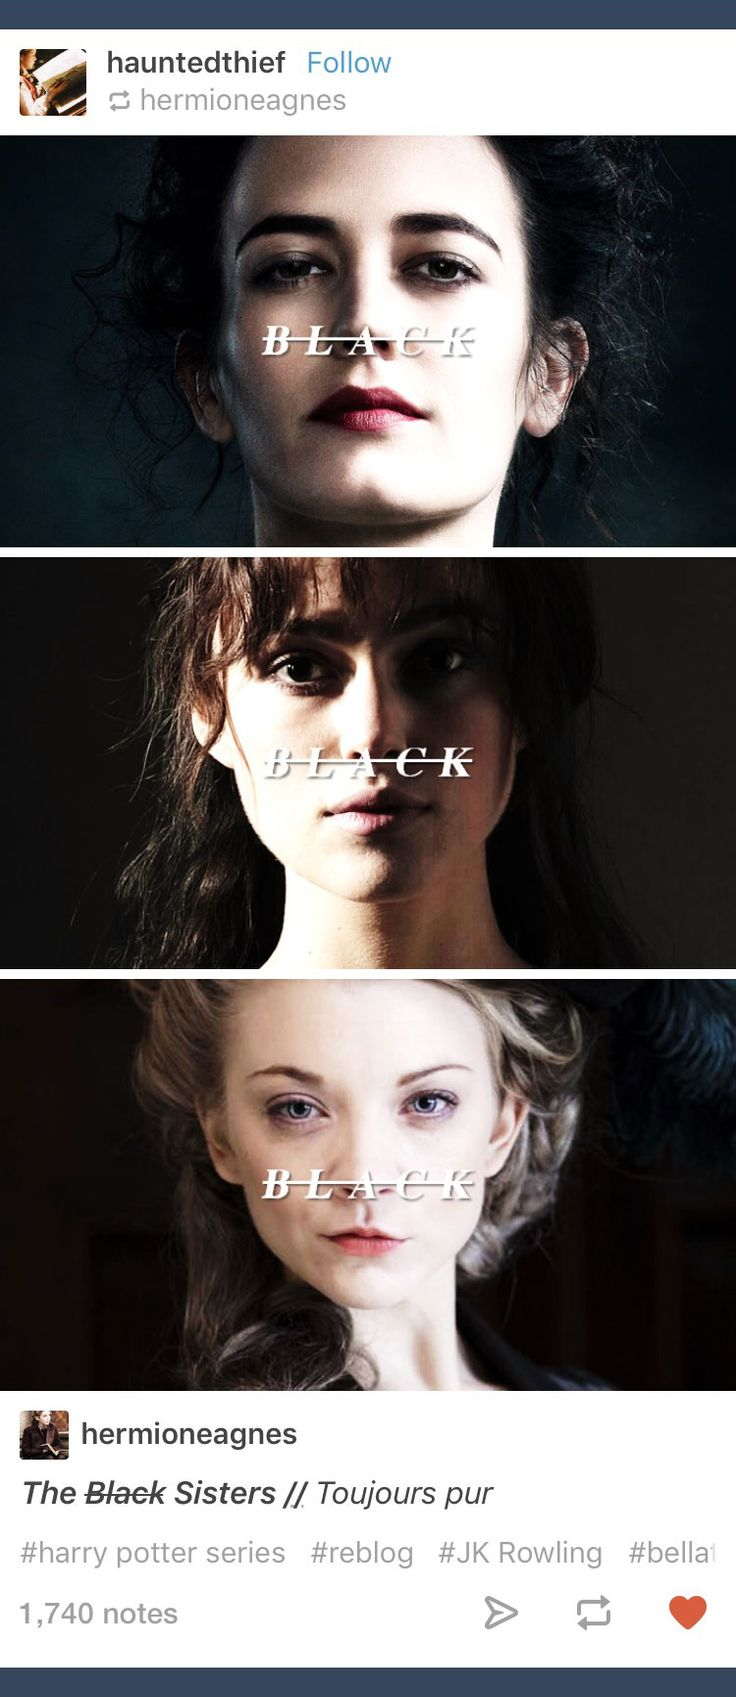 Tumblr; Harry Potter; Bellatrix Lestrange; Andromeda Tonks; Narcissa Malfoy